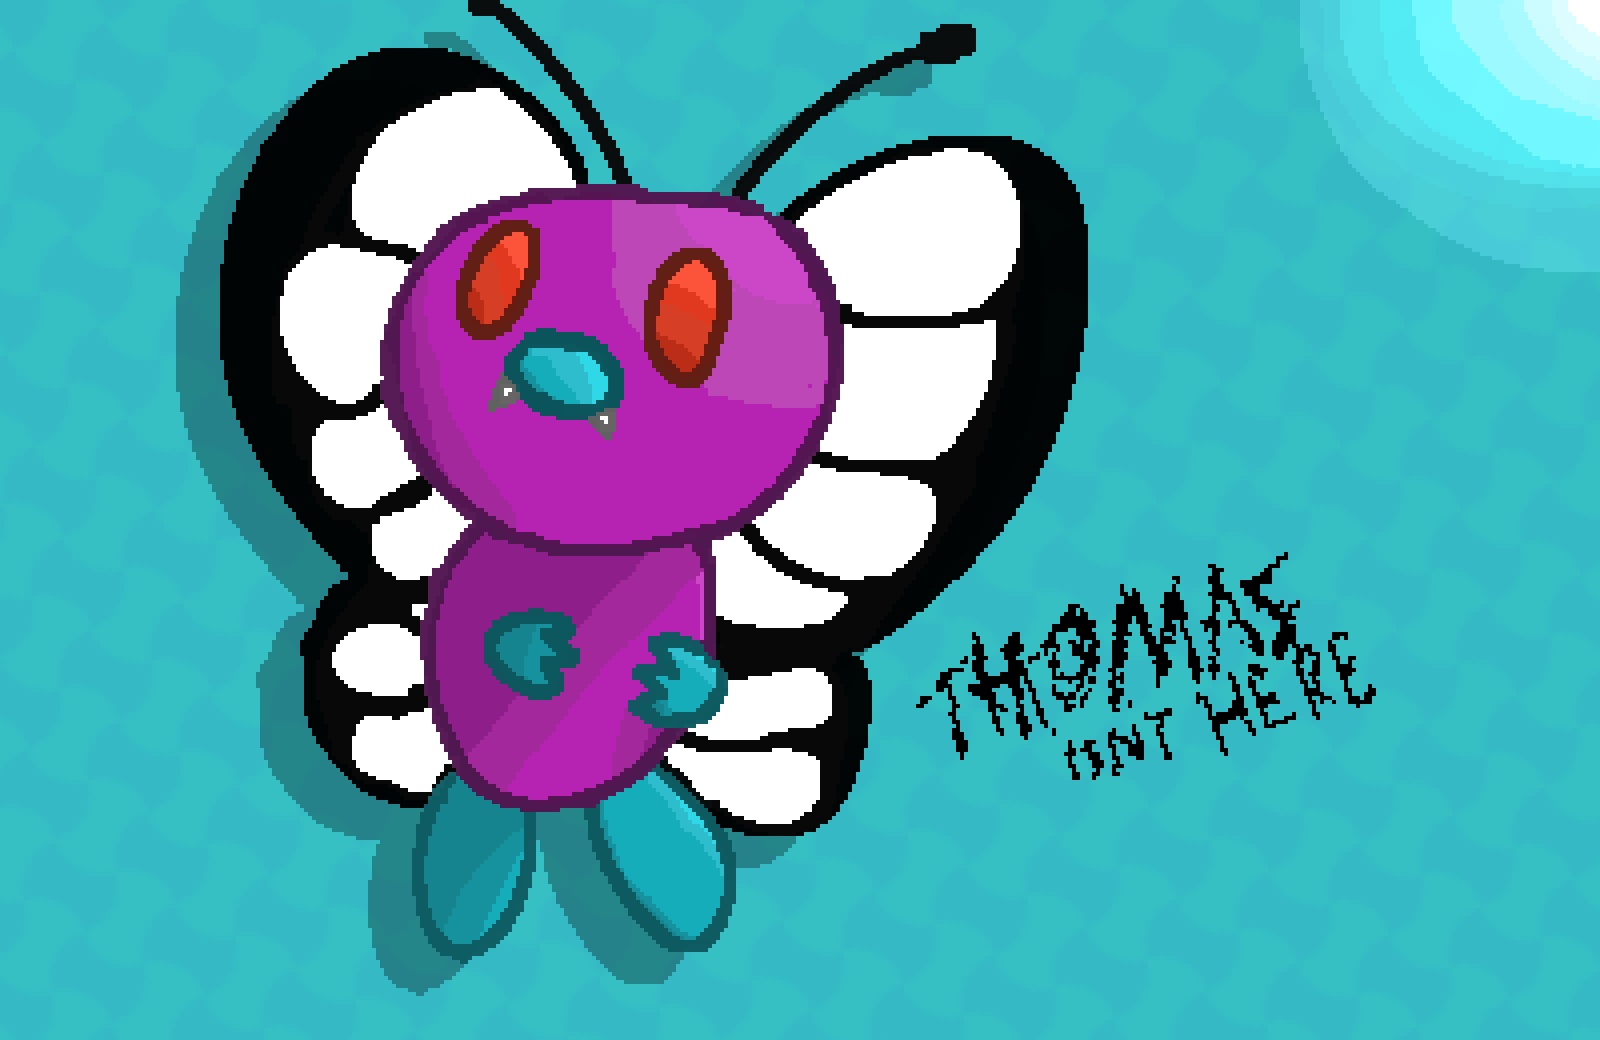 butterfree2 upscale.png